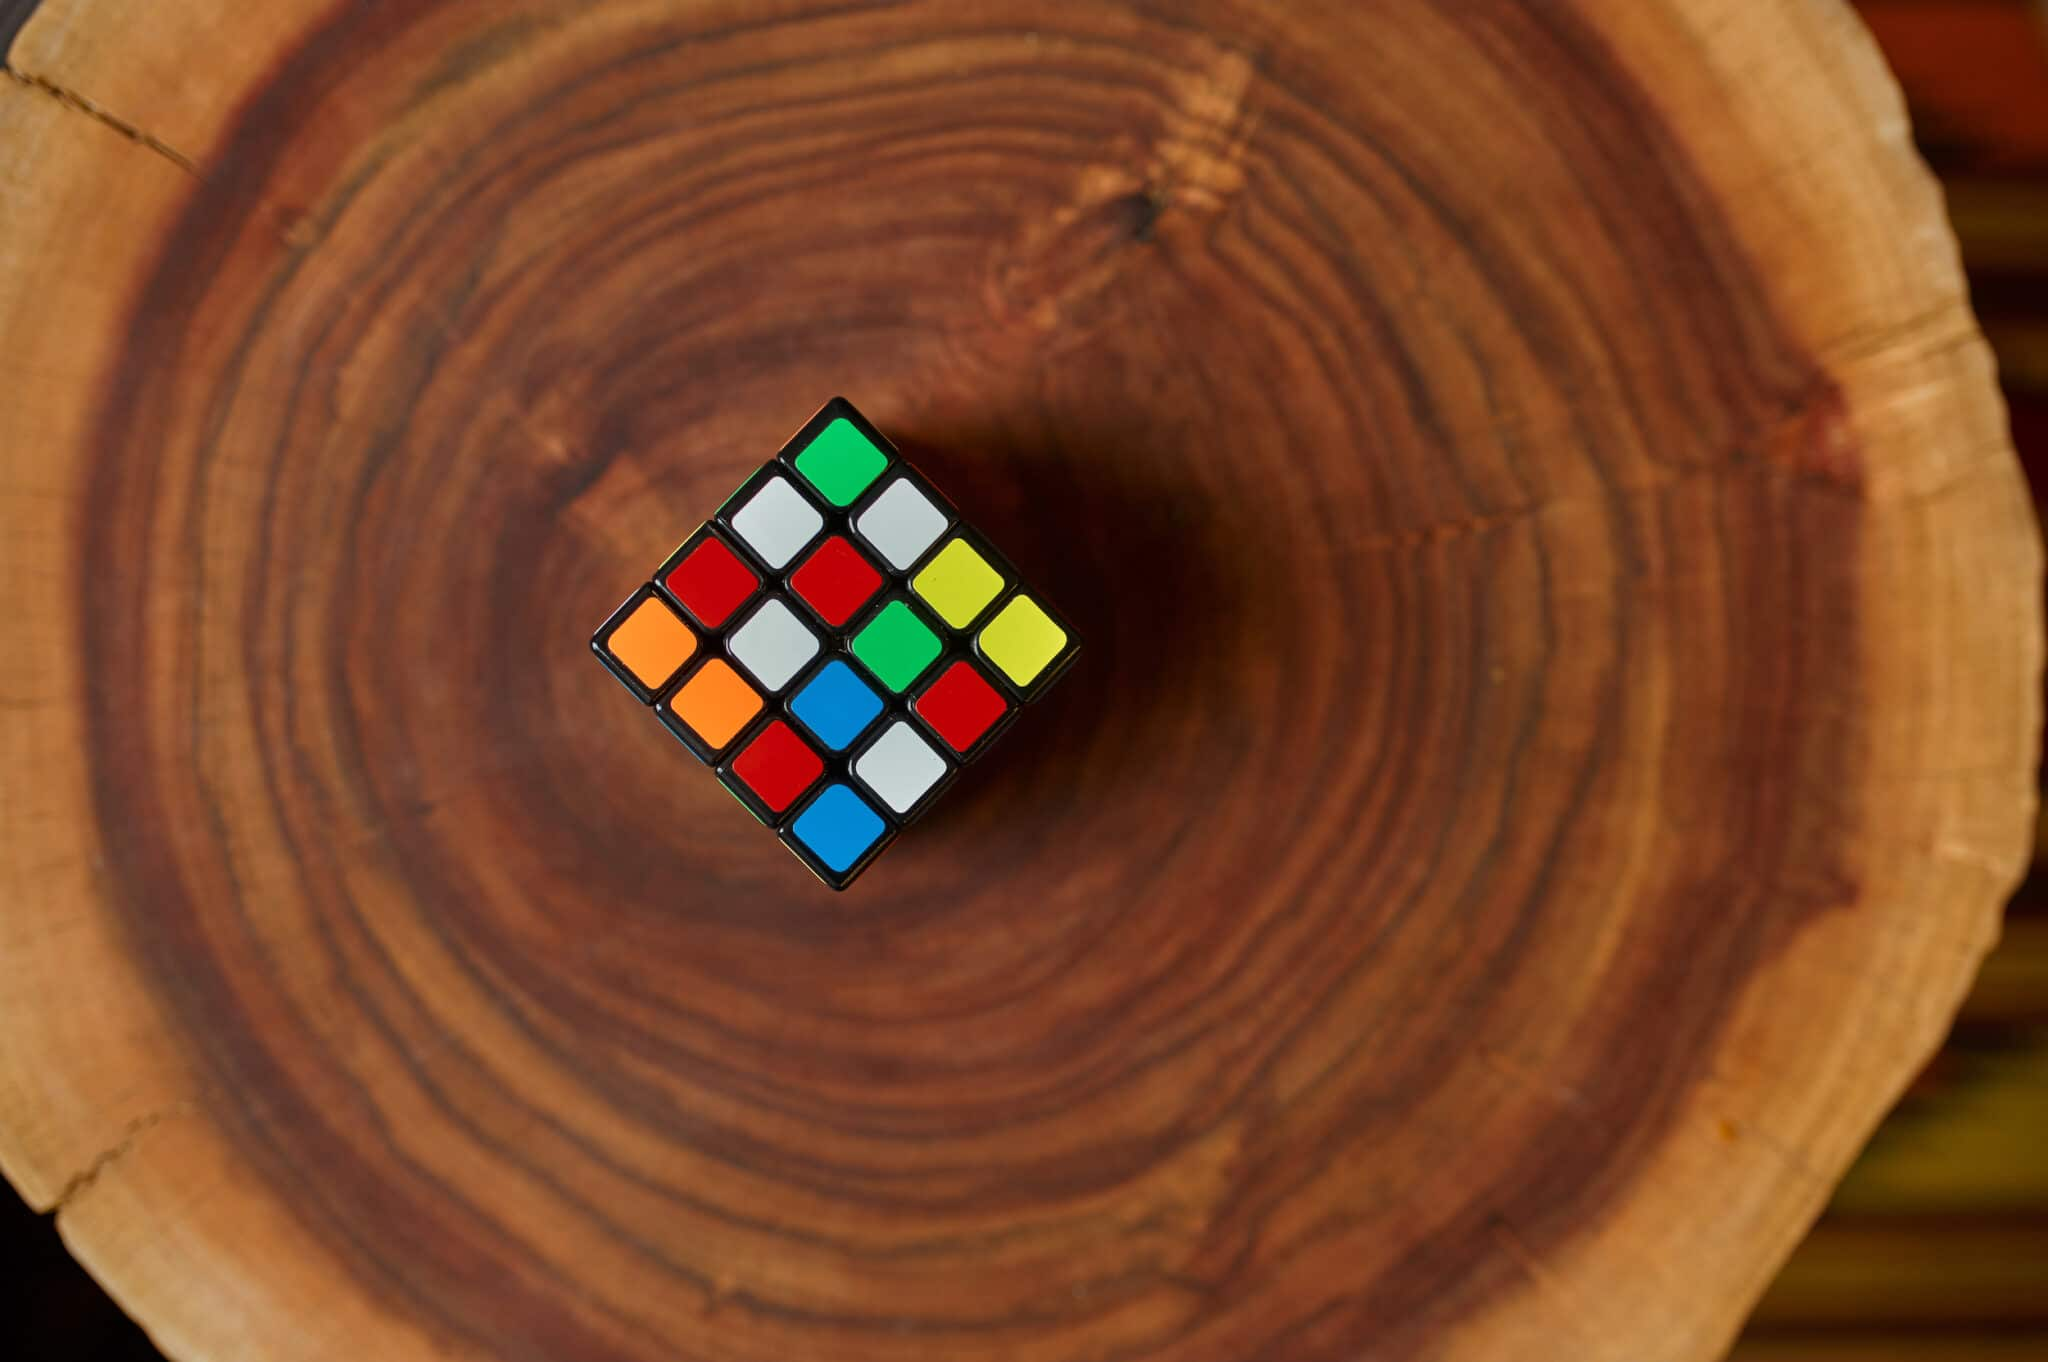 Classical colorful puzzle cube on wooden stump